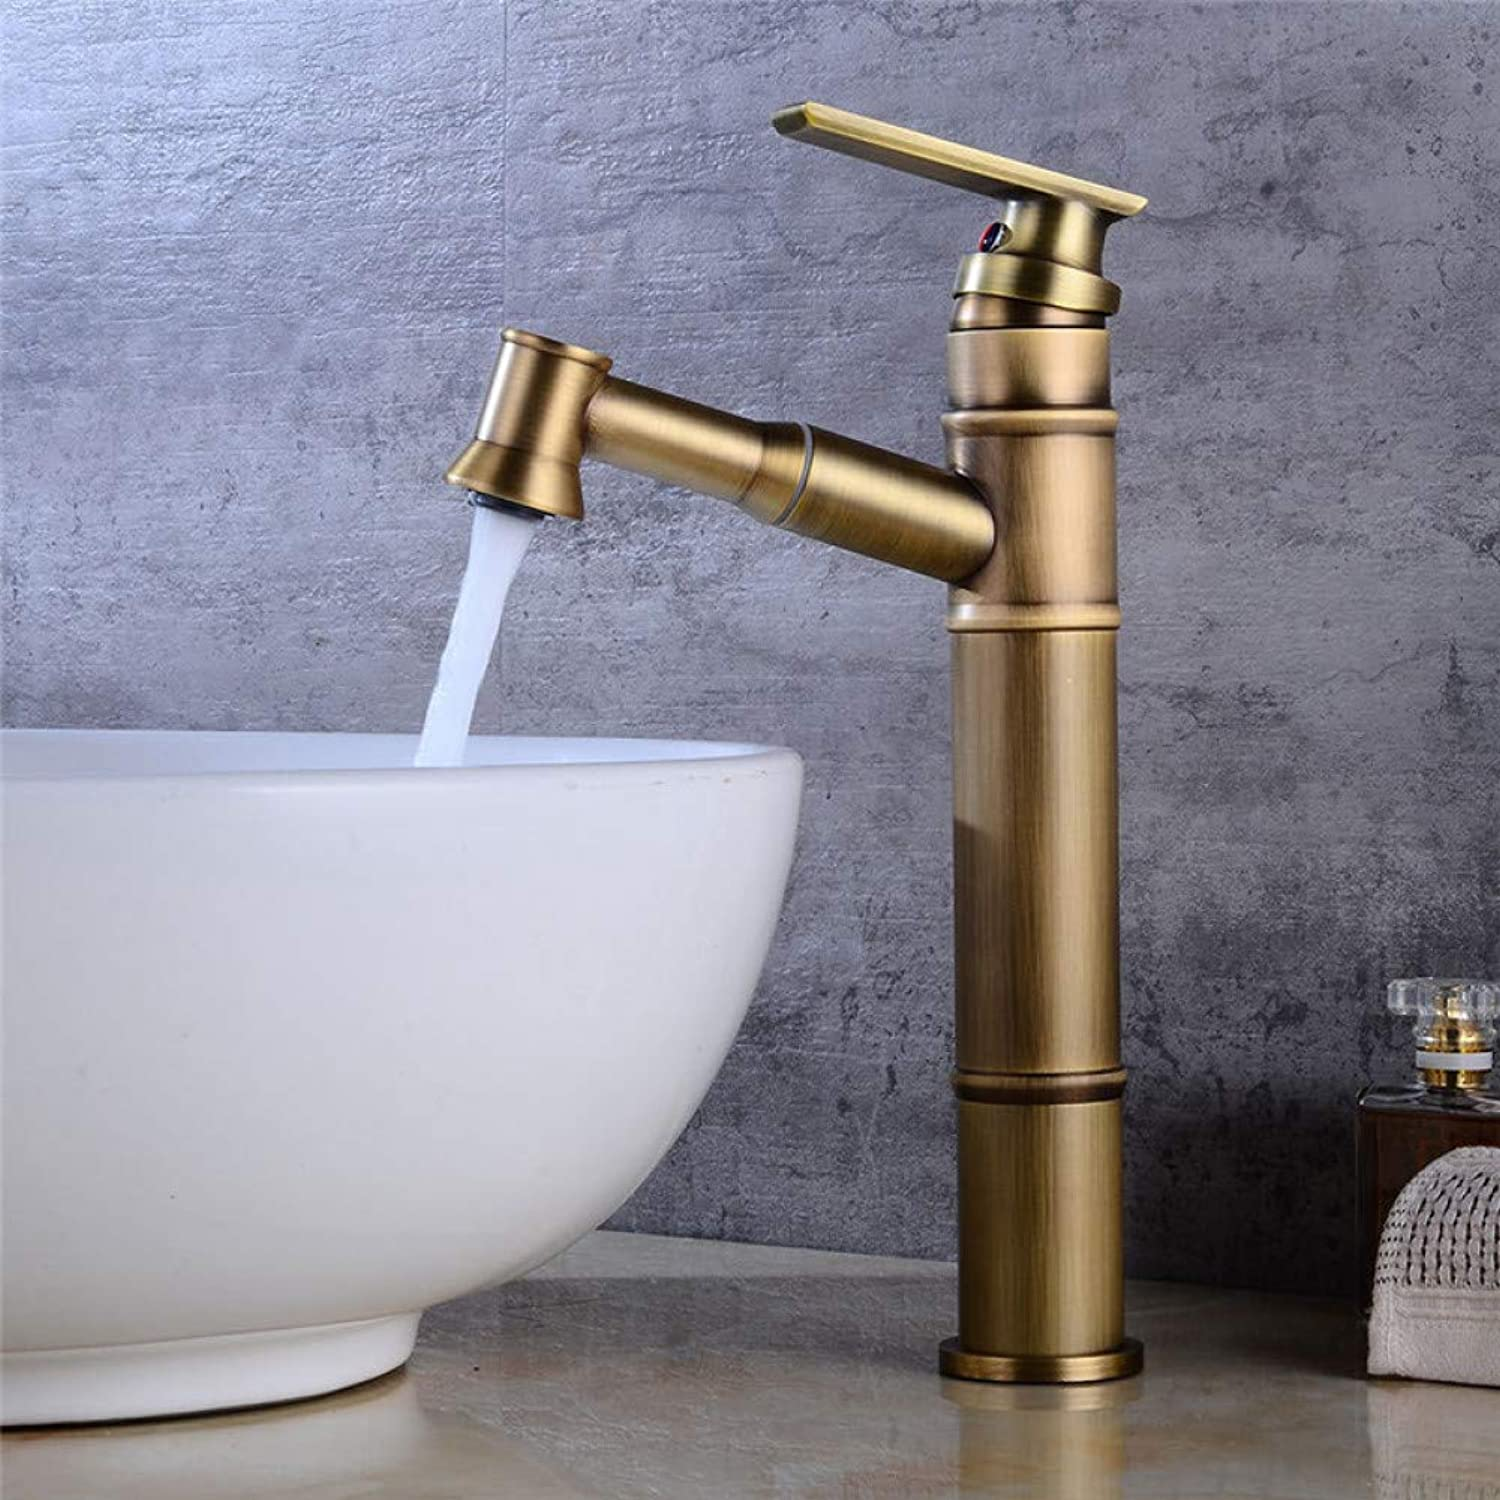 Bathroom Sink Taps YHSGY Bathroom Basin Faucet Antique Brass Sink Mixer Tap Single Hole Hot Cold Crane Pull Out Shower Head Basin Faucet Torneira Grifo